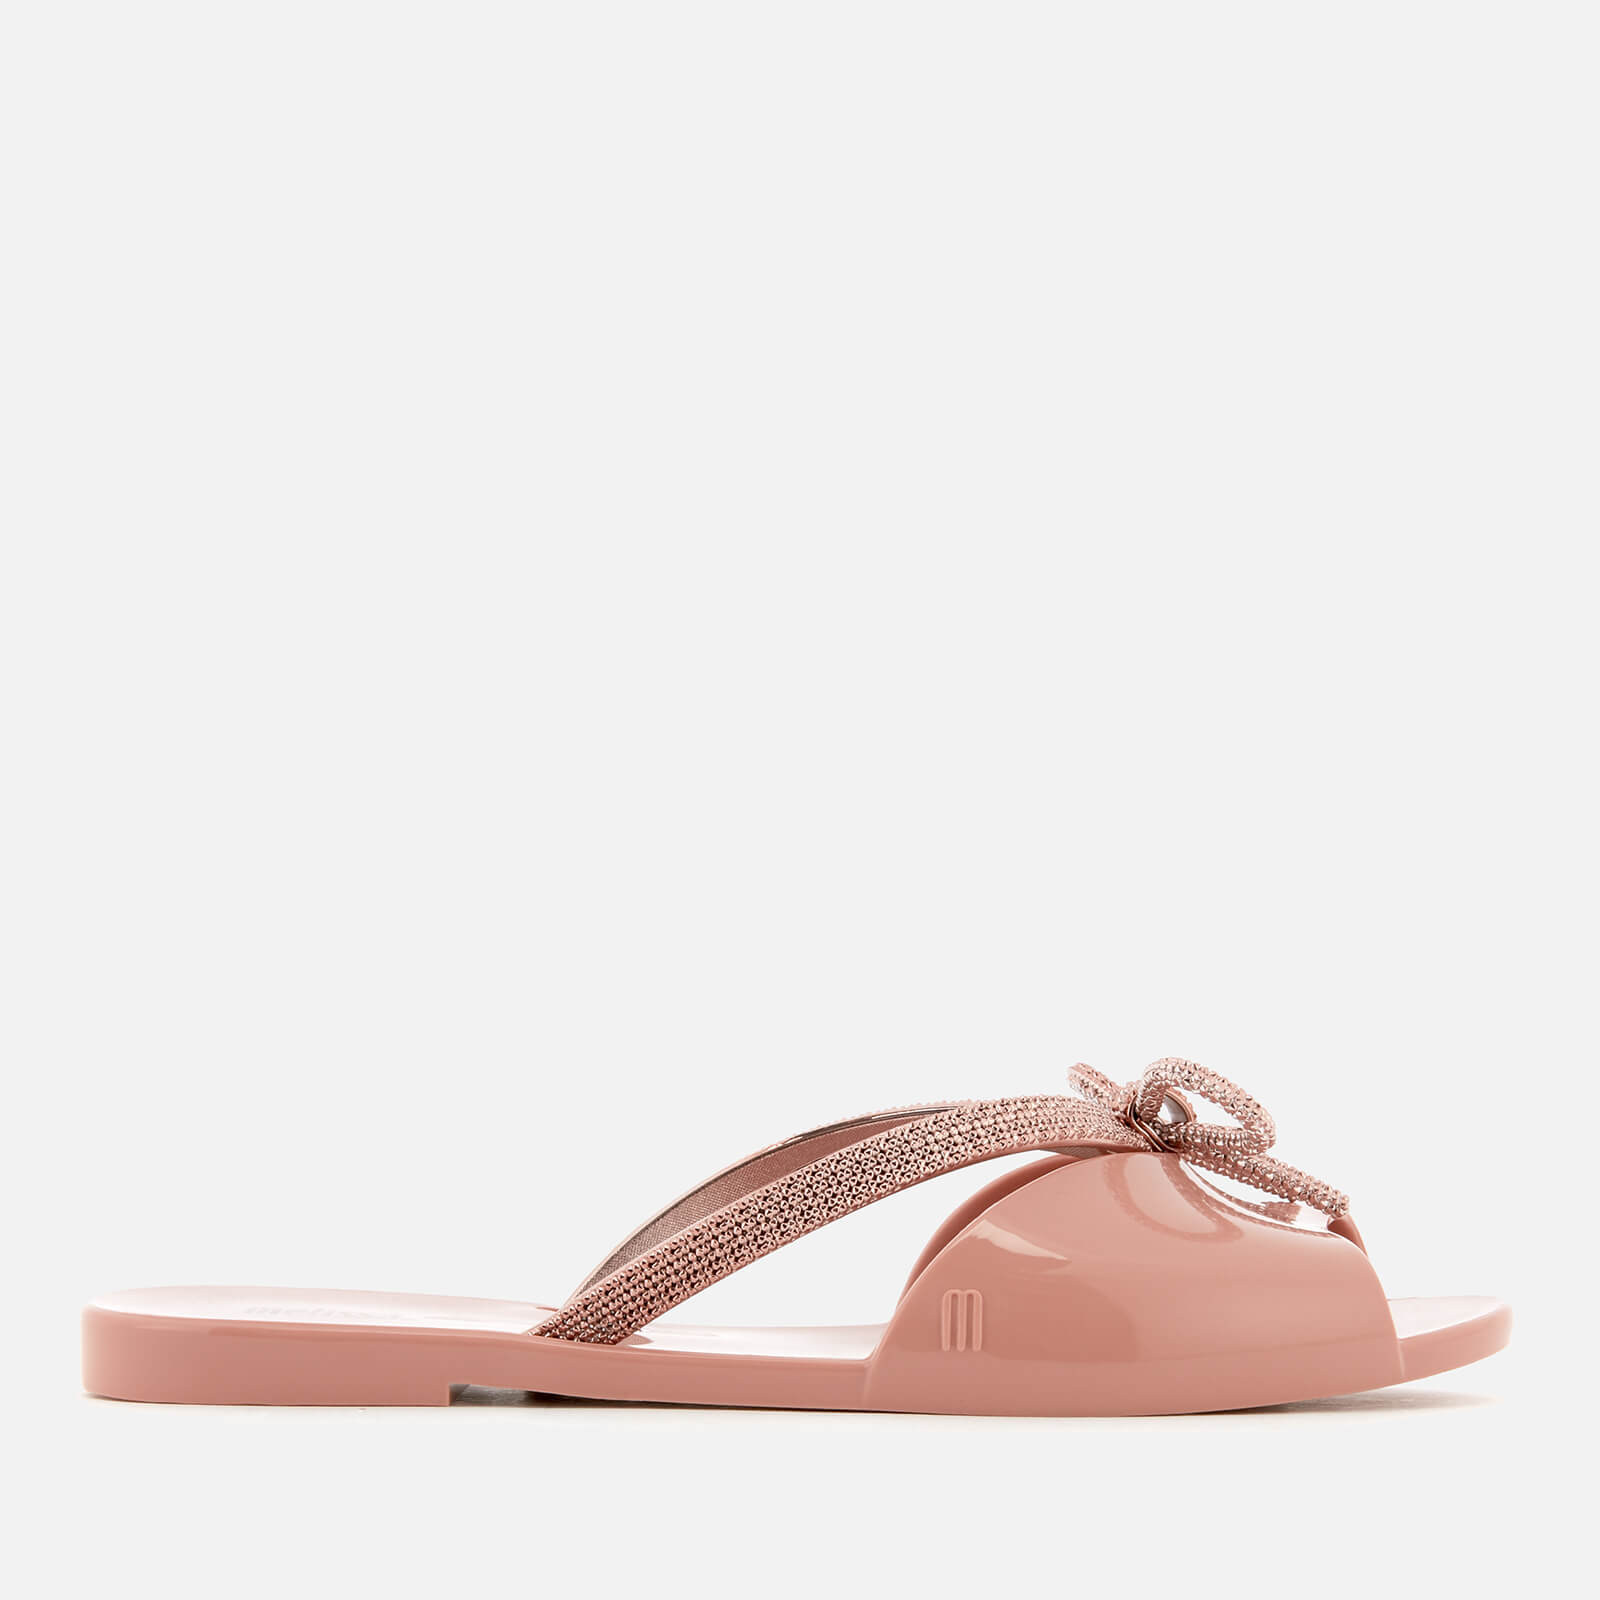 Melissa Women's Ela Glam Sandals - Blush - UK 3 - Pink